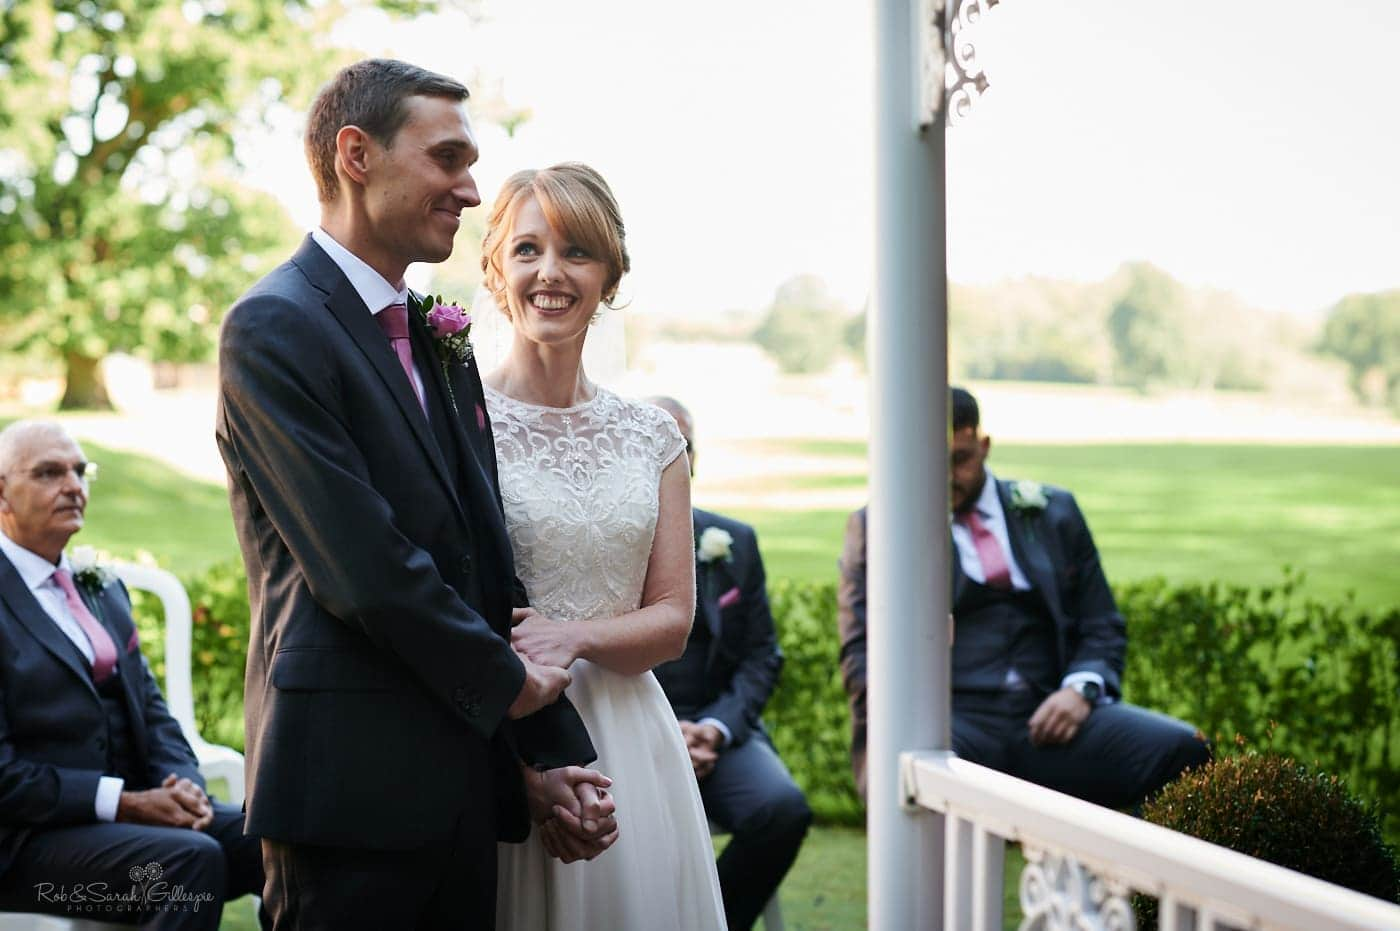 Bride and groom exchange vows during oudoor wedding at Pendrell Hall